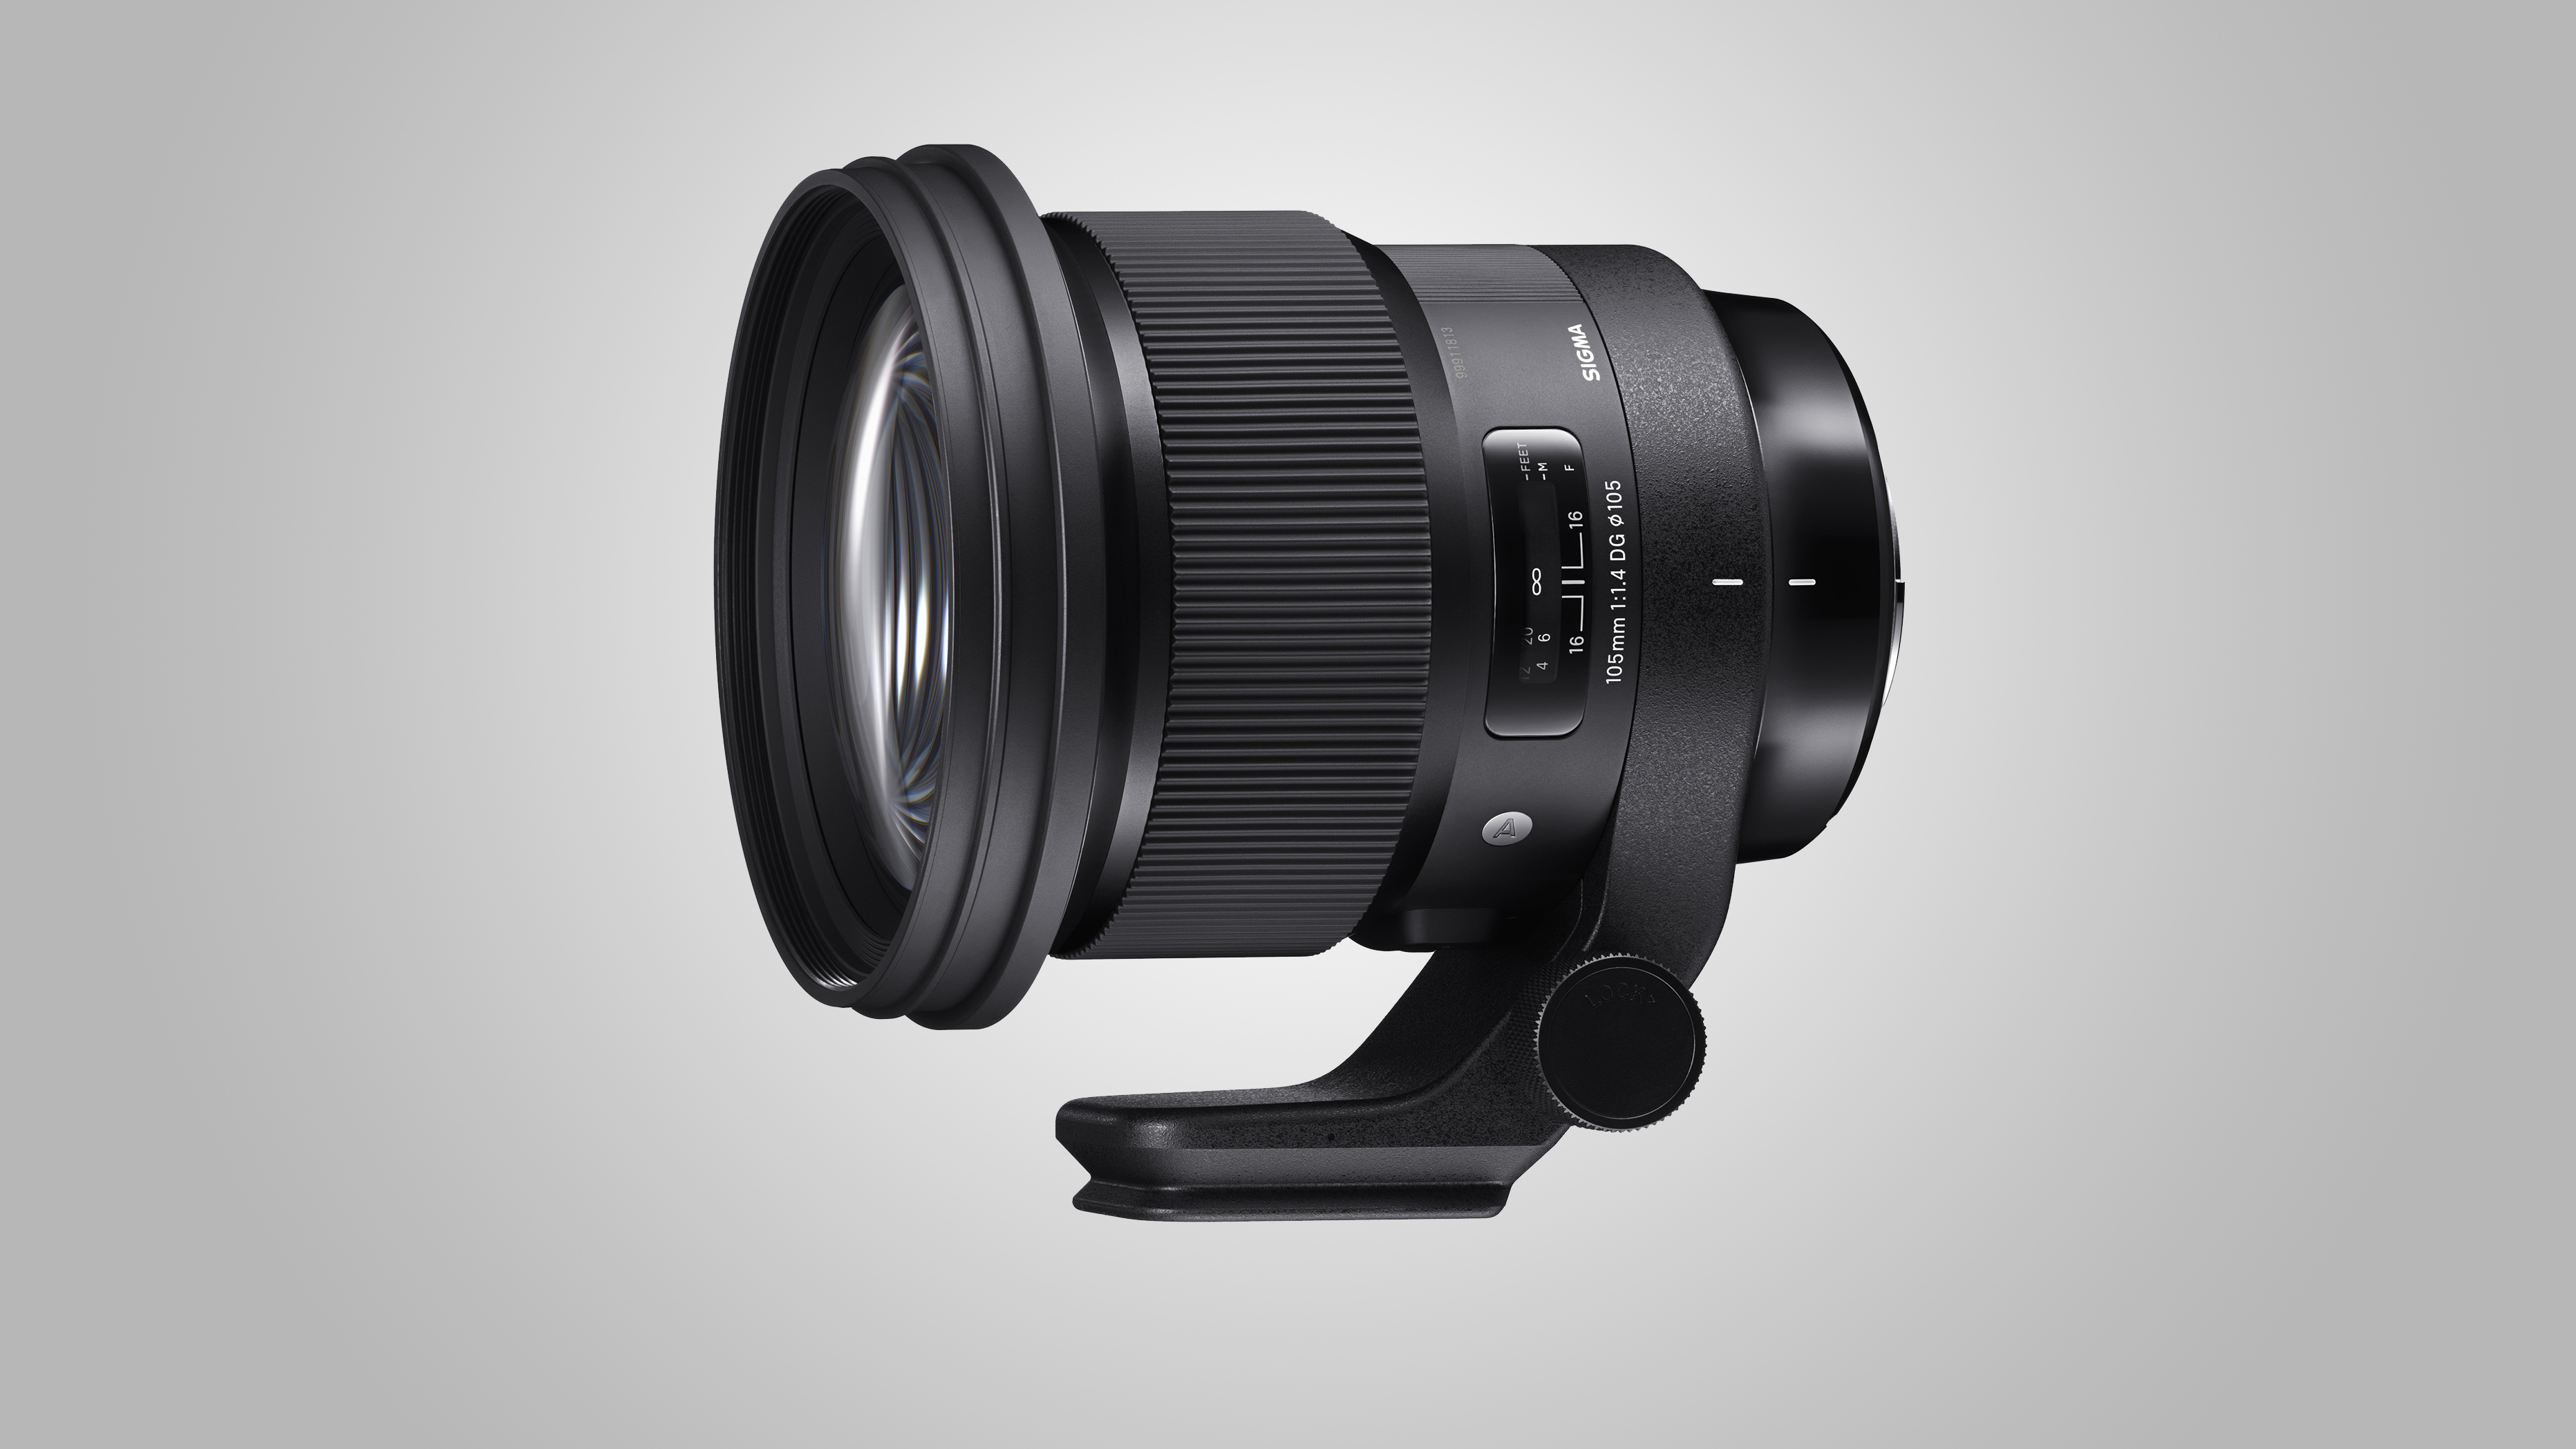 Sigma 105mm f/1.4 DG HSM | Art